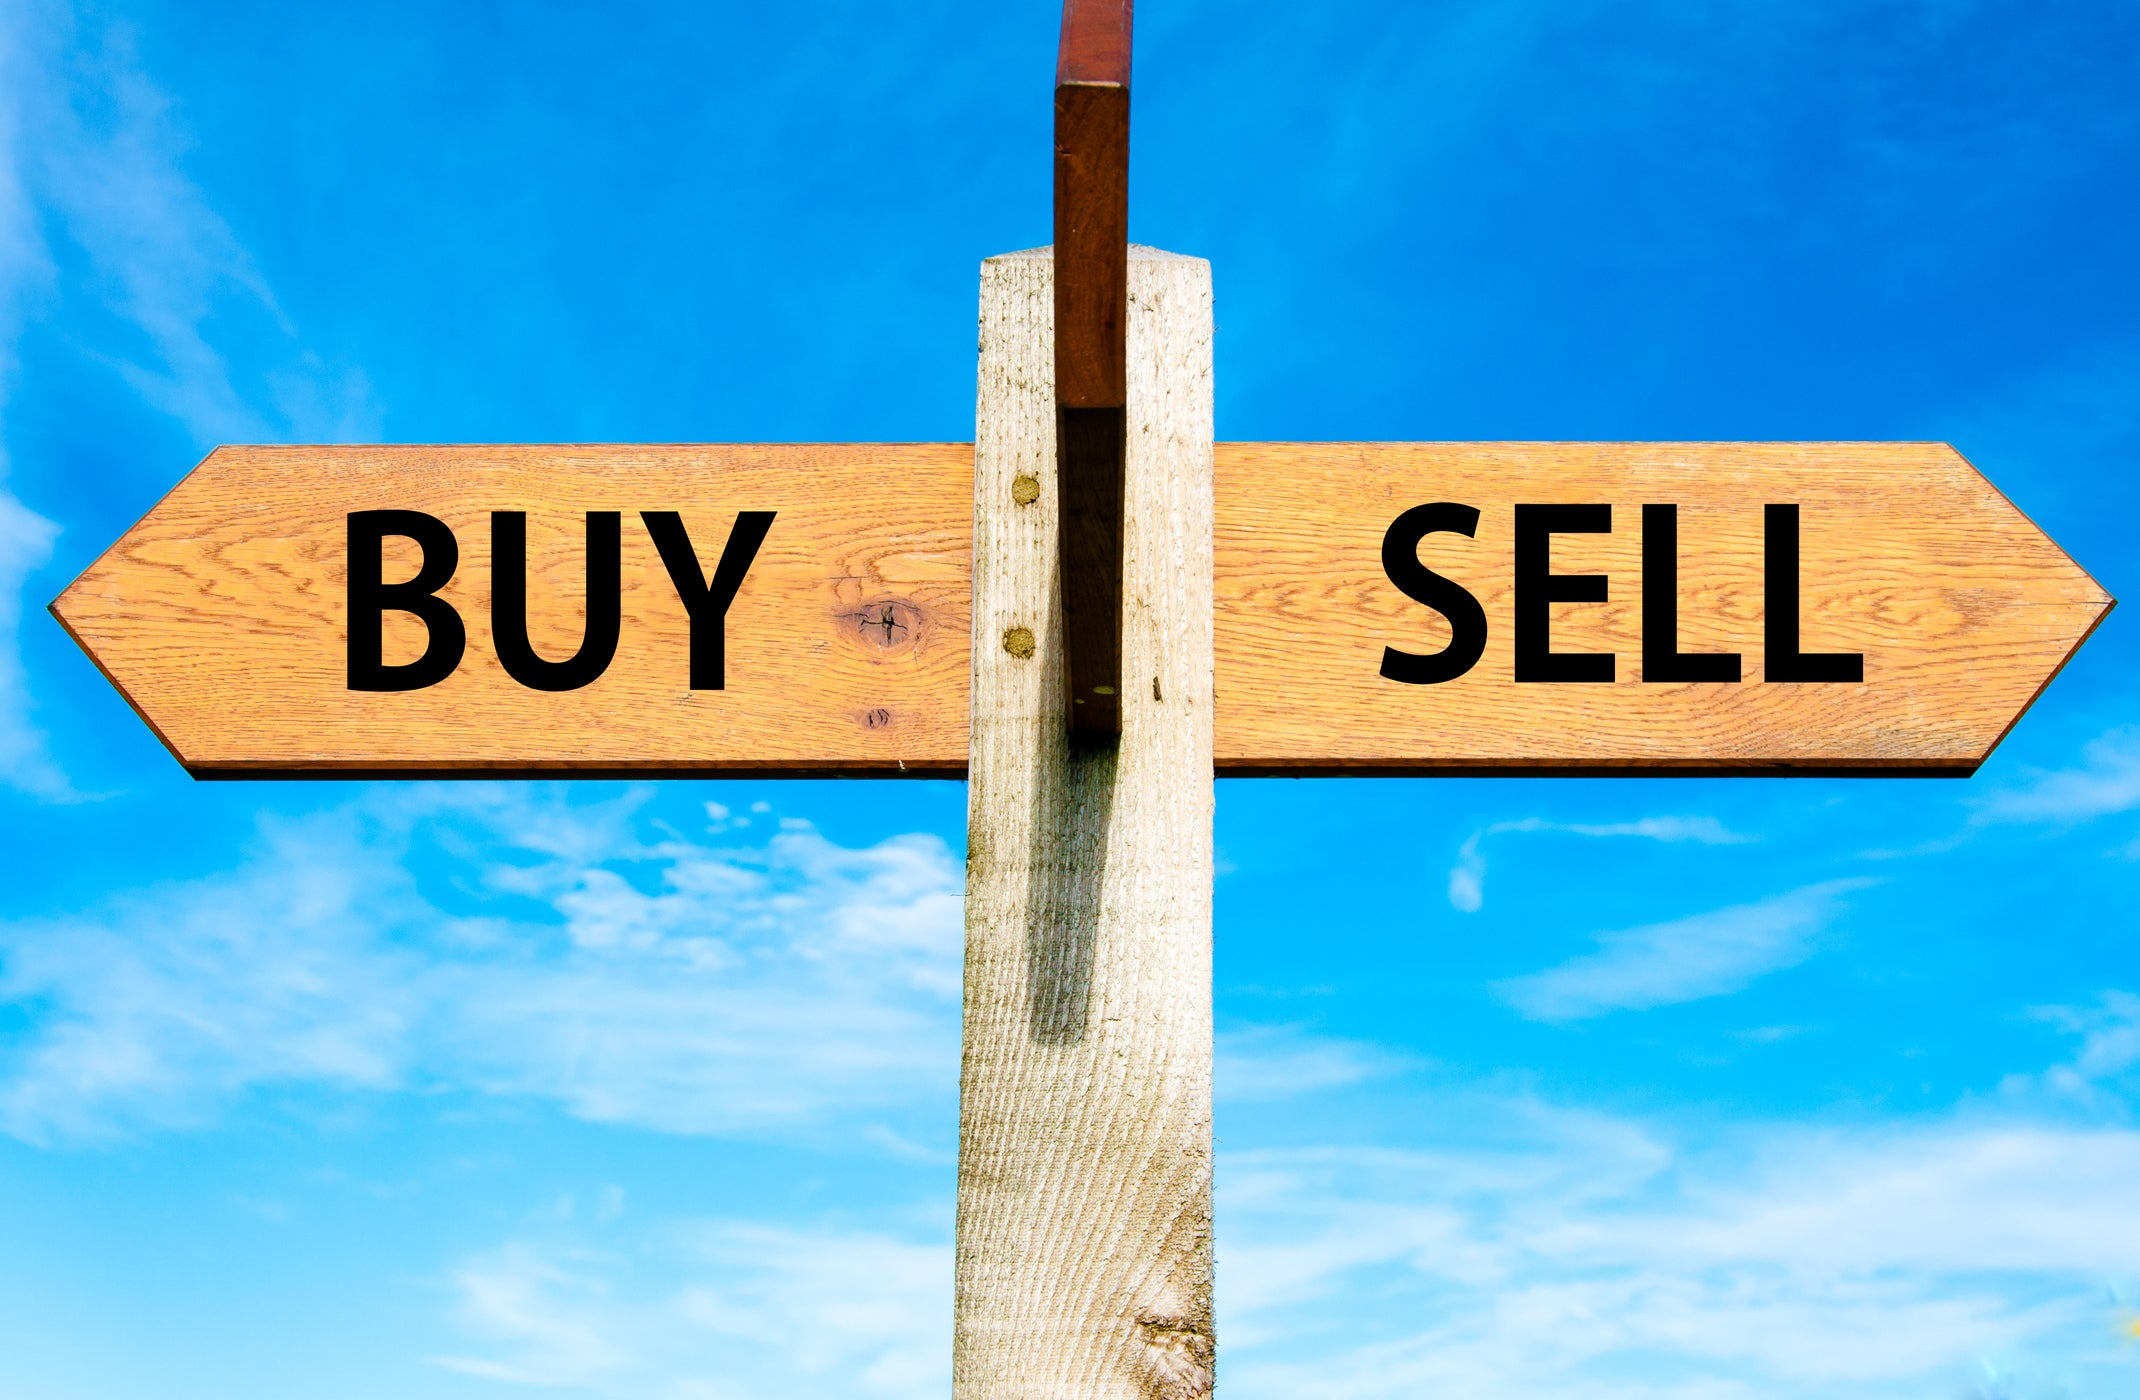 A sign with pointing arrows at each end labeled buy on one side and sell on the other.